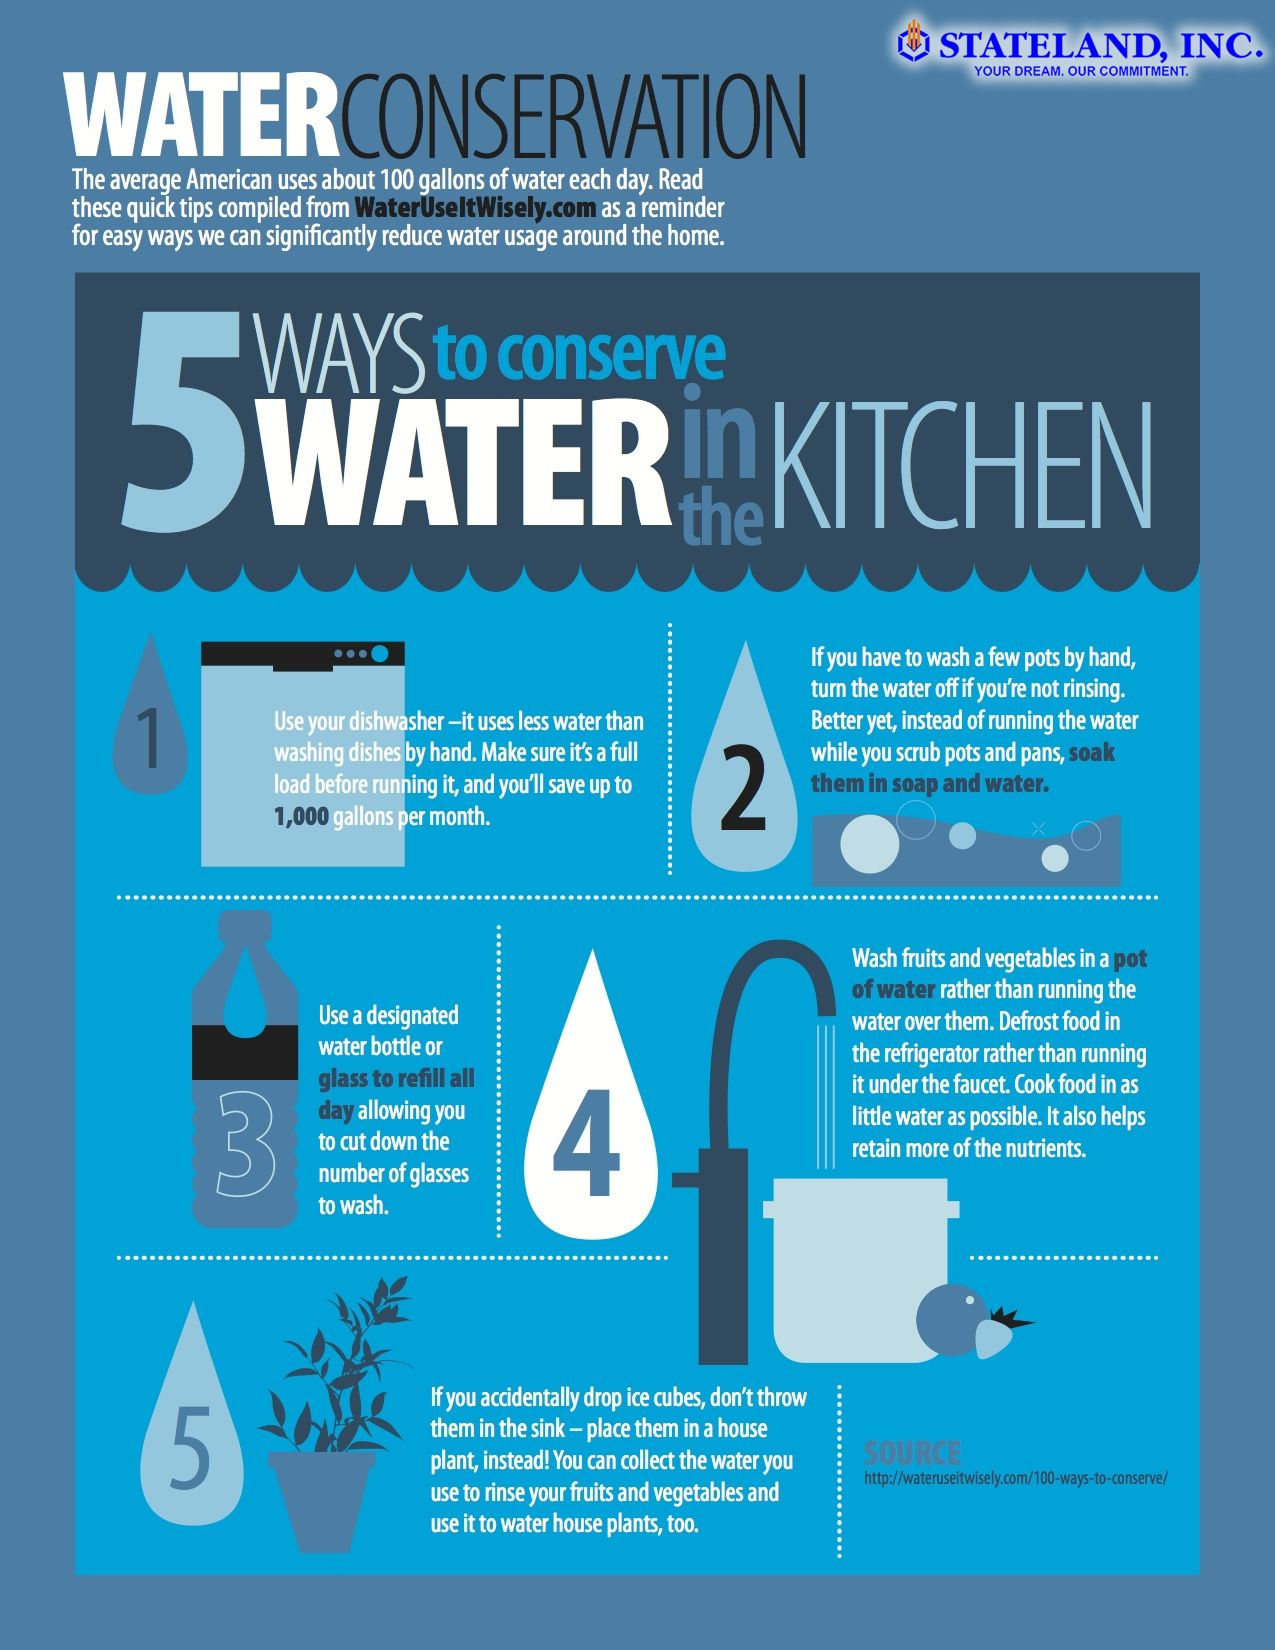 5 Ways To Conserve WATER in the Kitchen | Stateland Real Estate ...